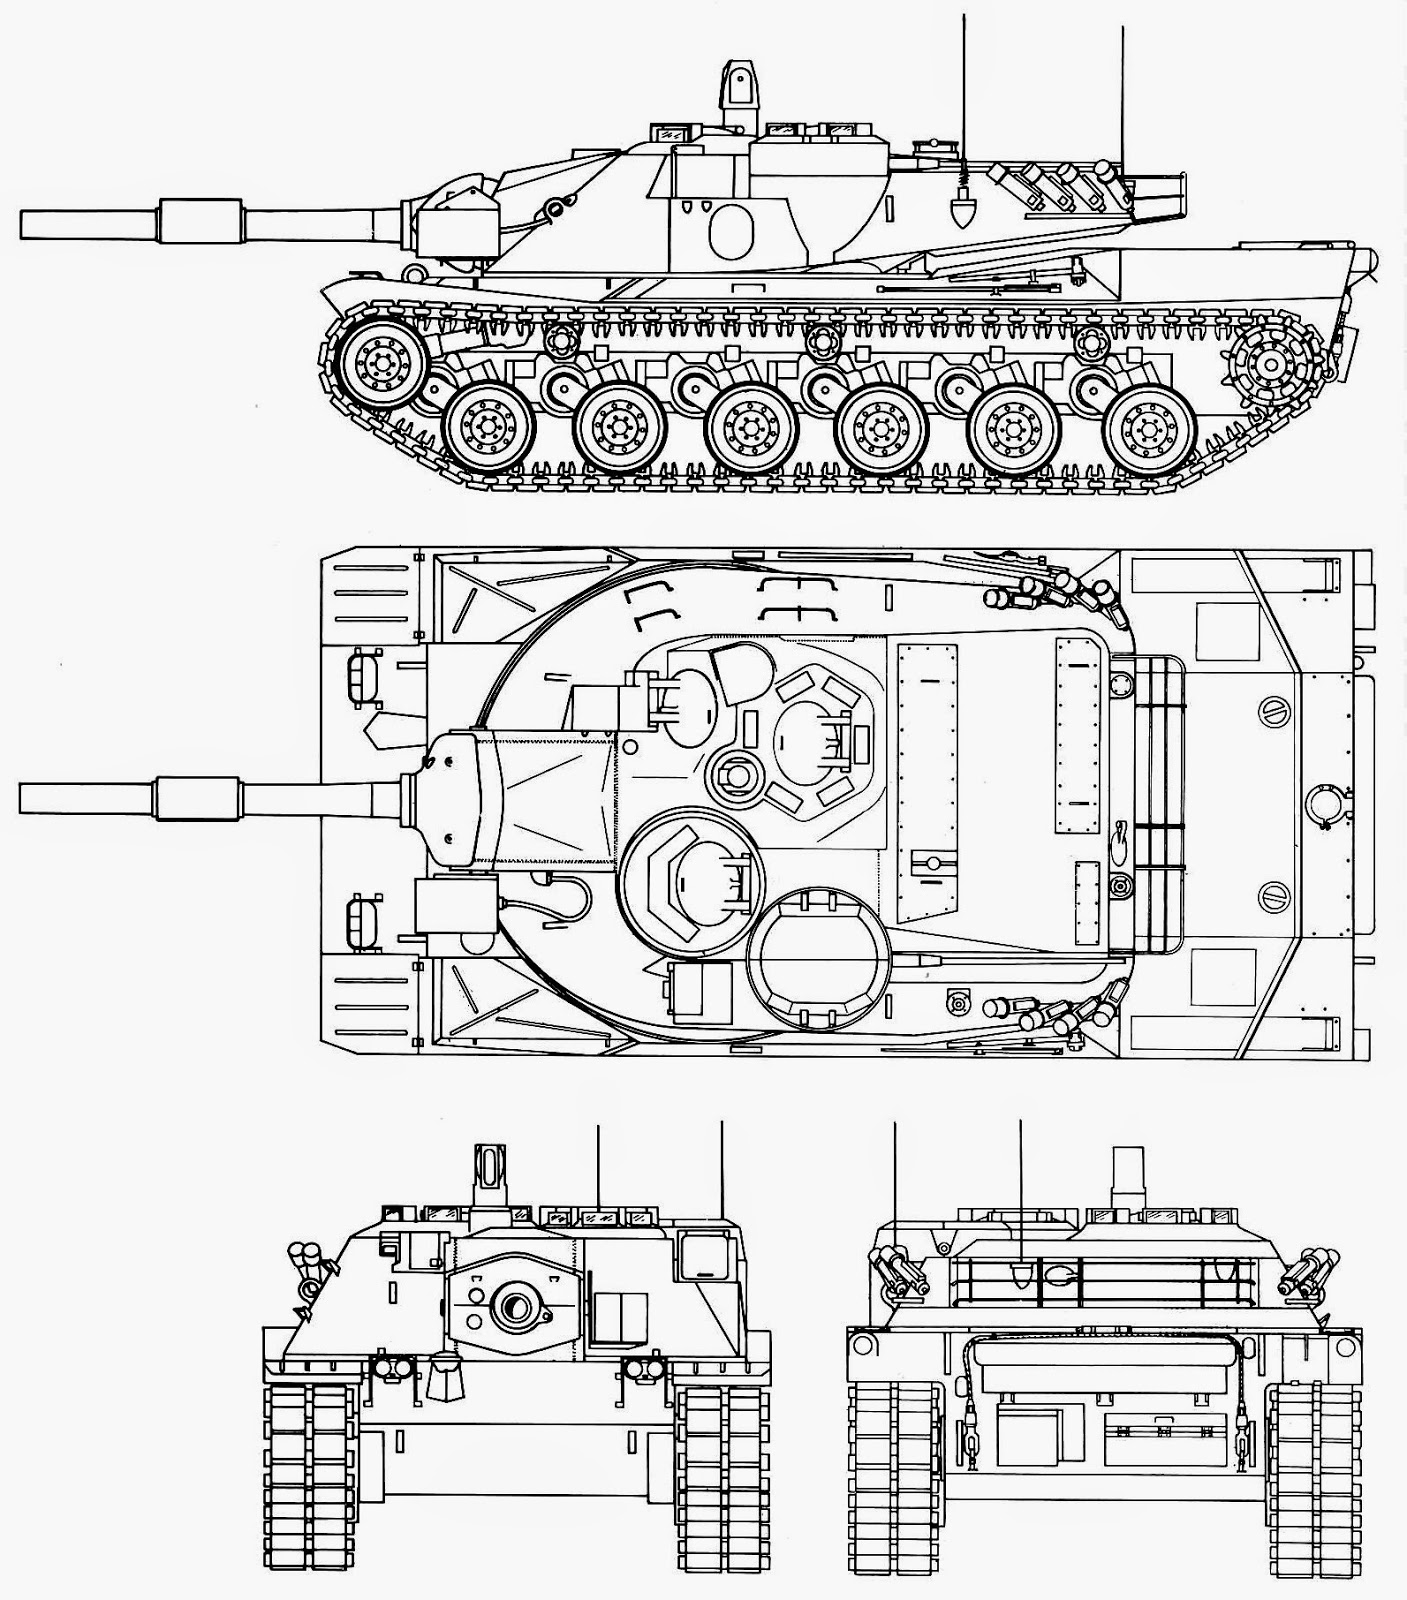 File:MBT-70 autoloader.jpg - Wikimedia Commons